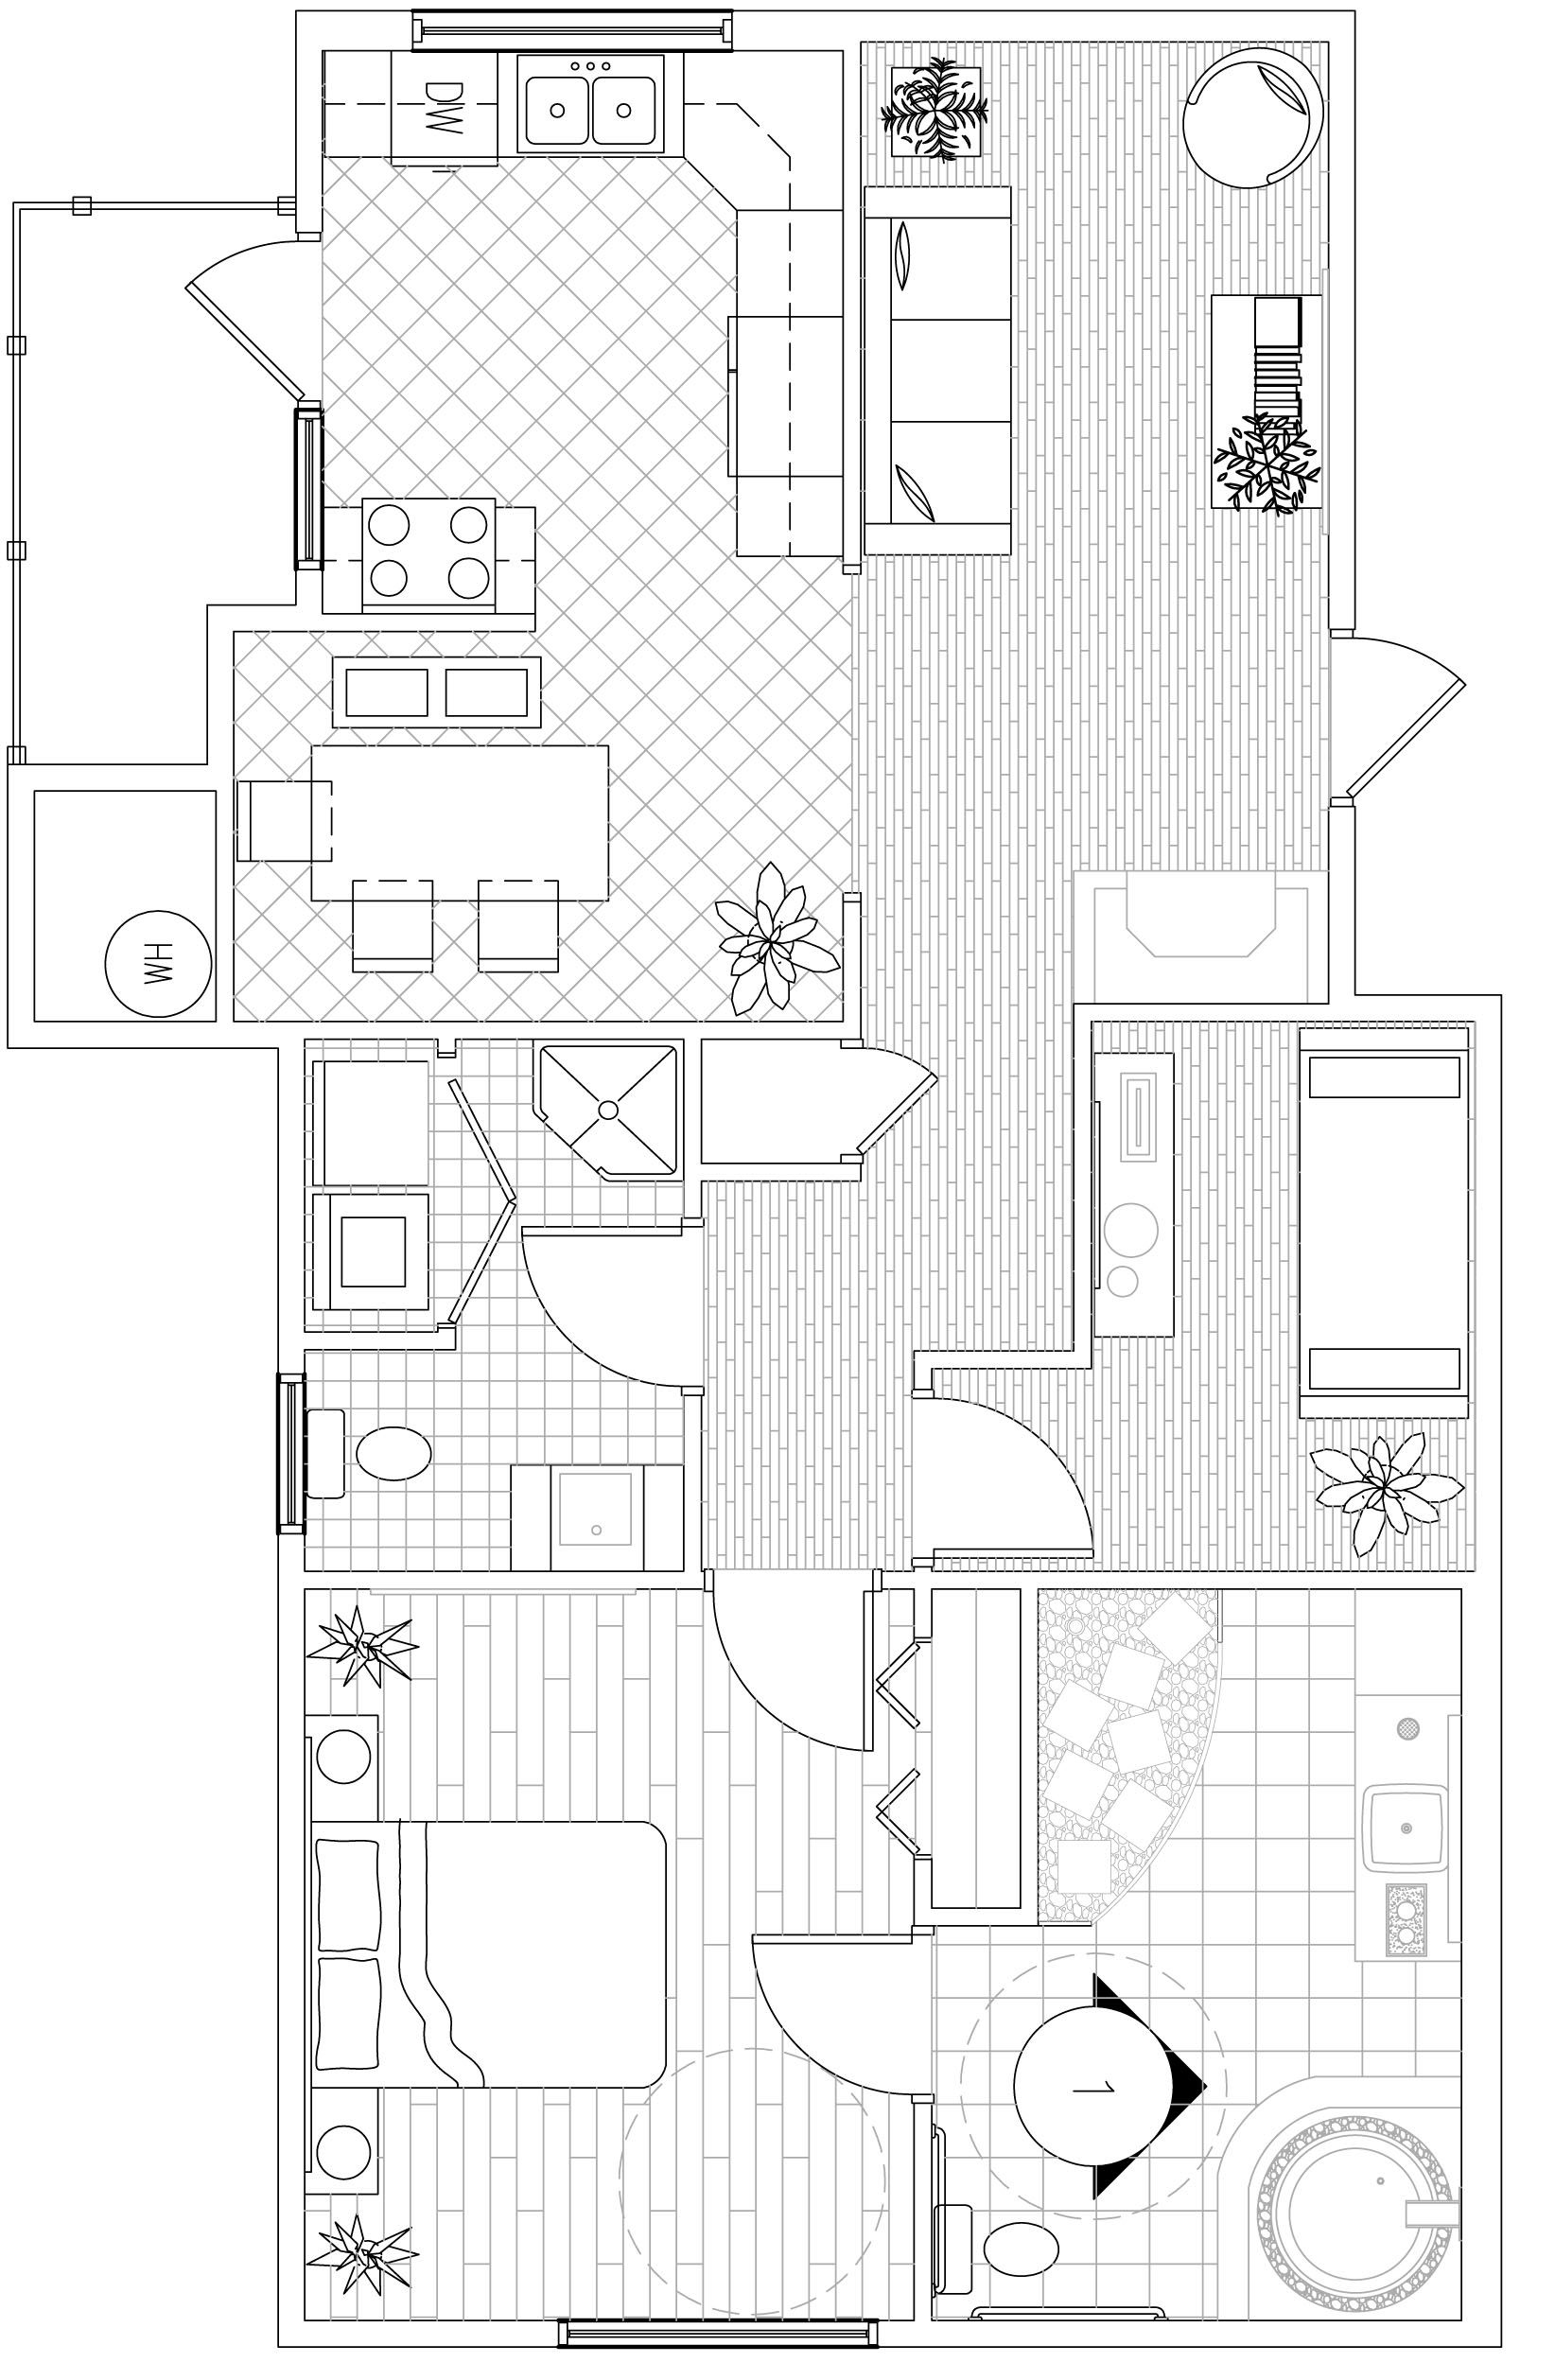 wheelchair housing design guide wwe steel chair hits this is the floor plan for a barrier free project we had